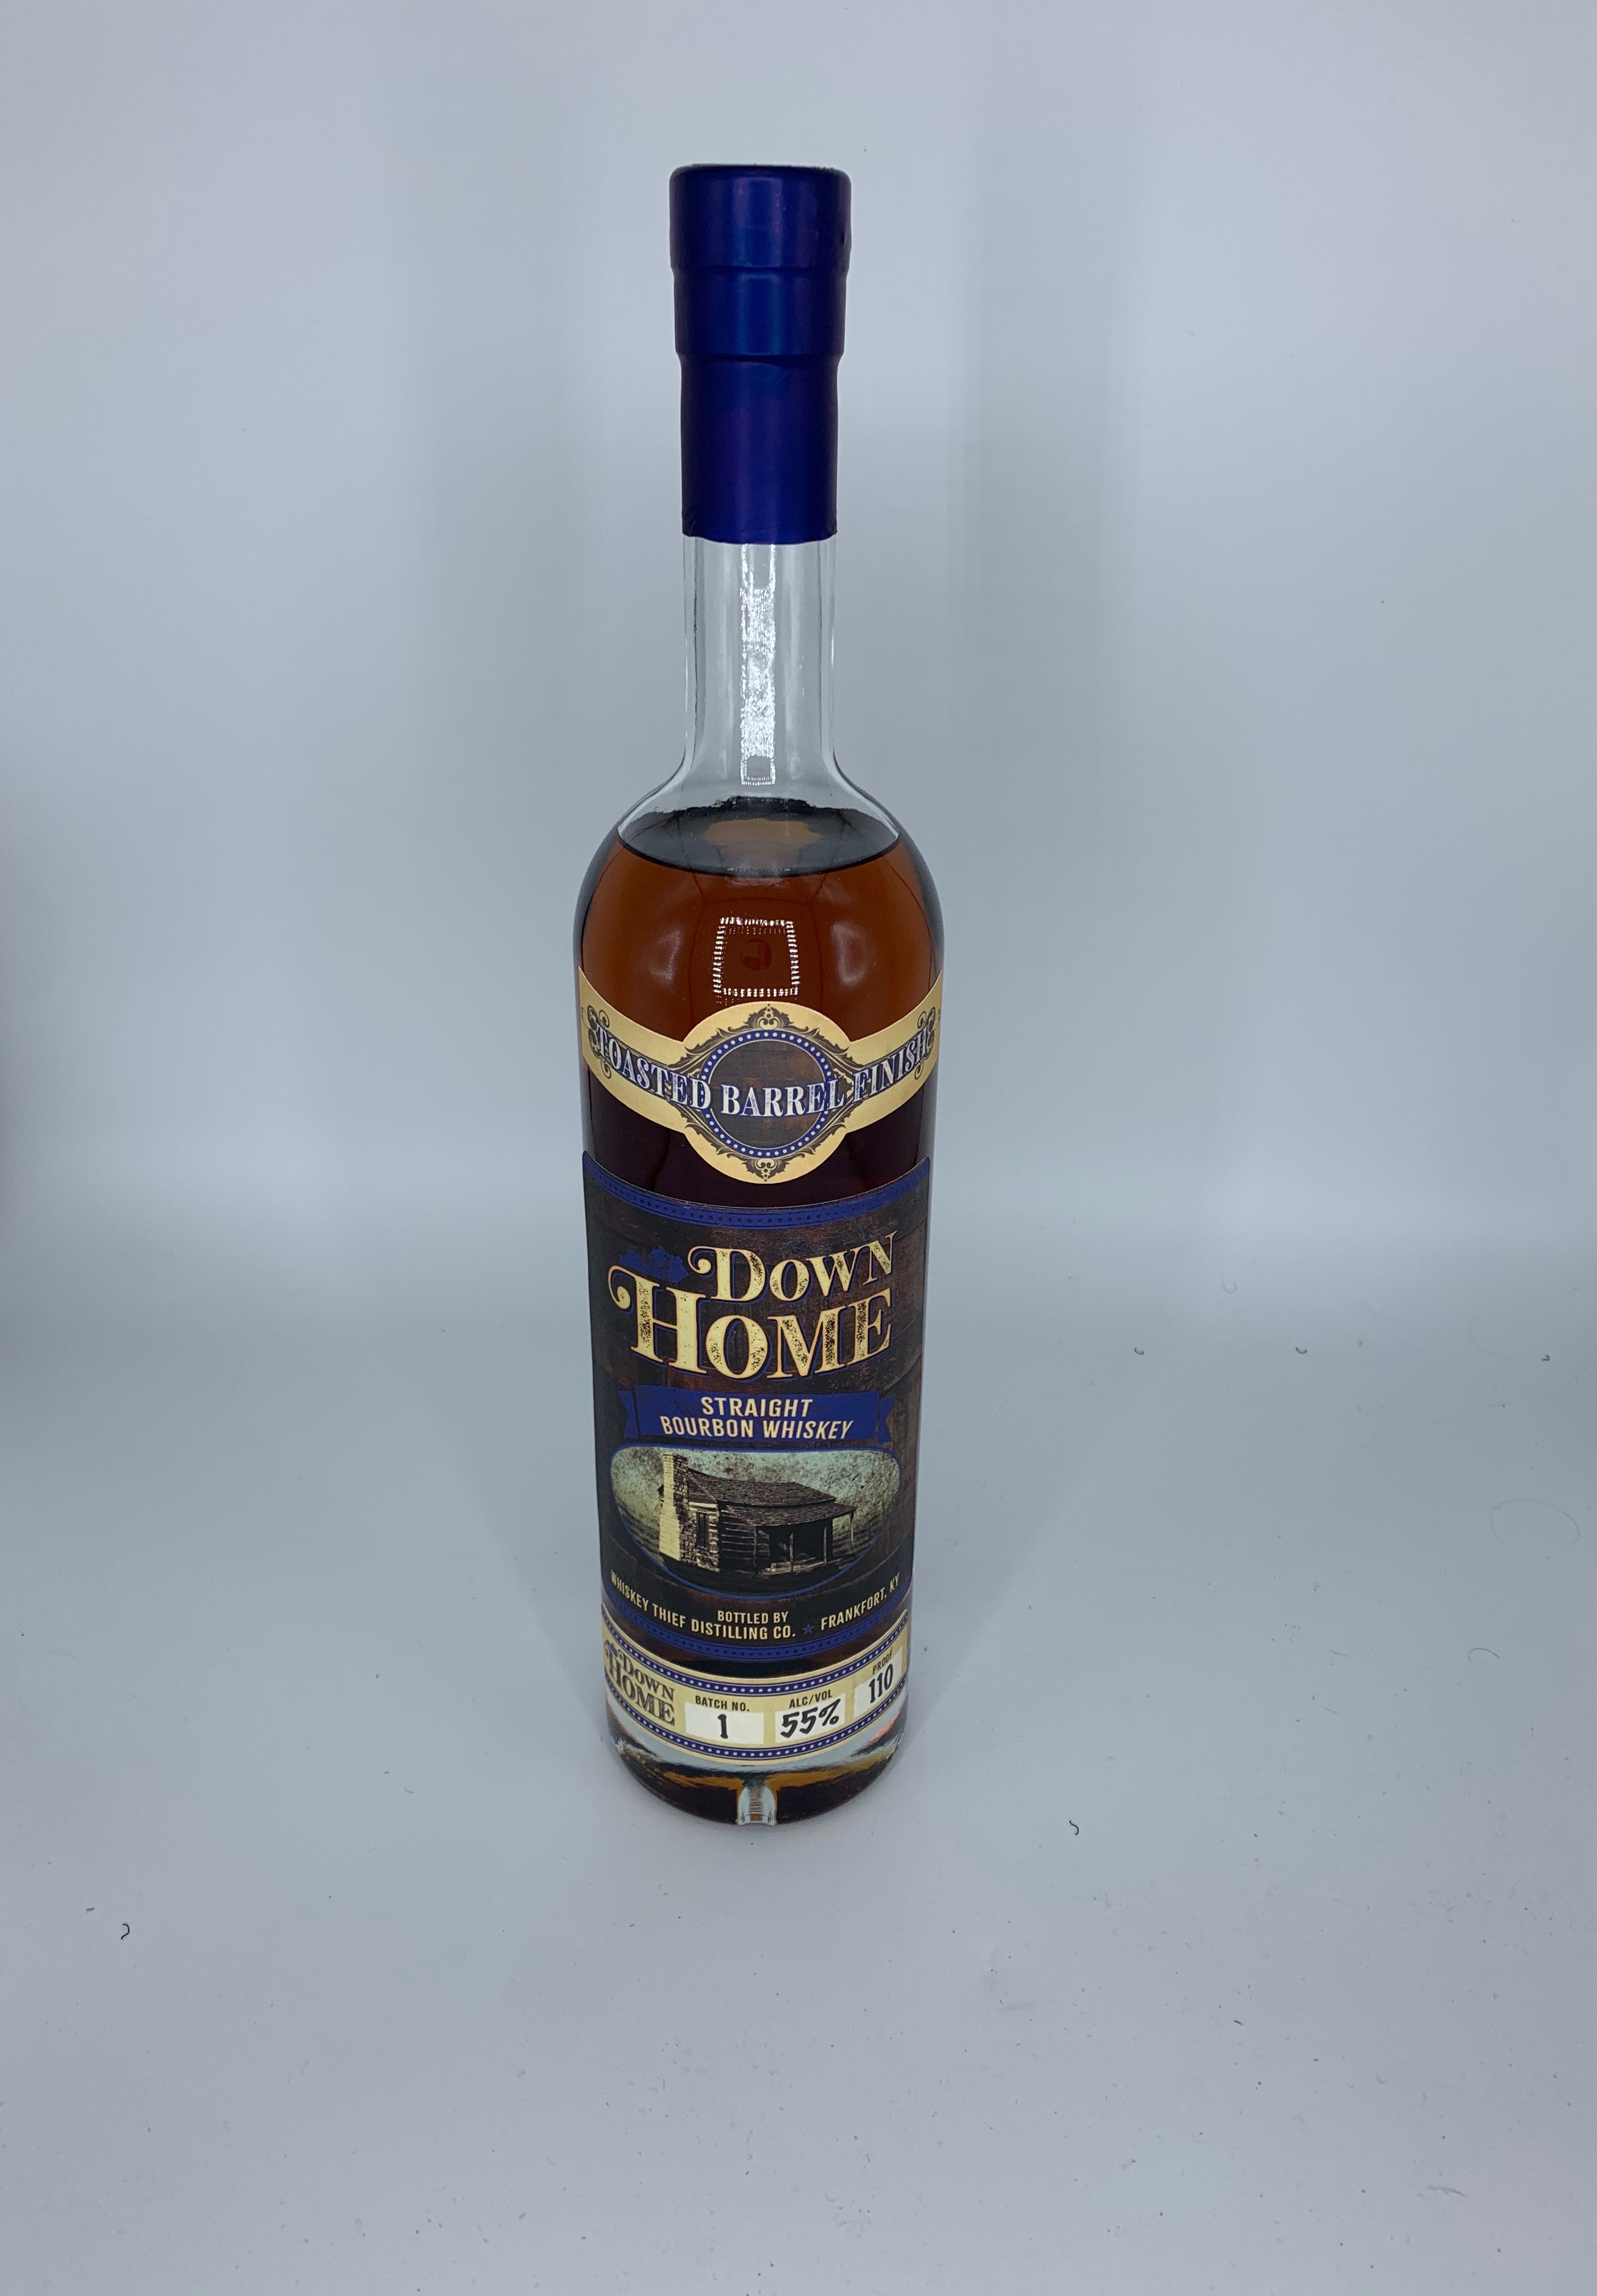 Down Home Bourbon Toasted Barrel Finish 110 proof Batch #1